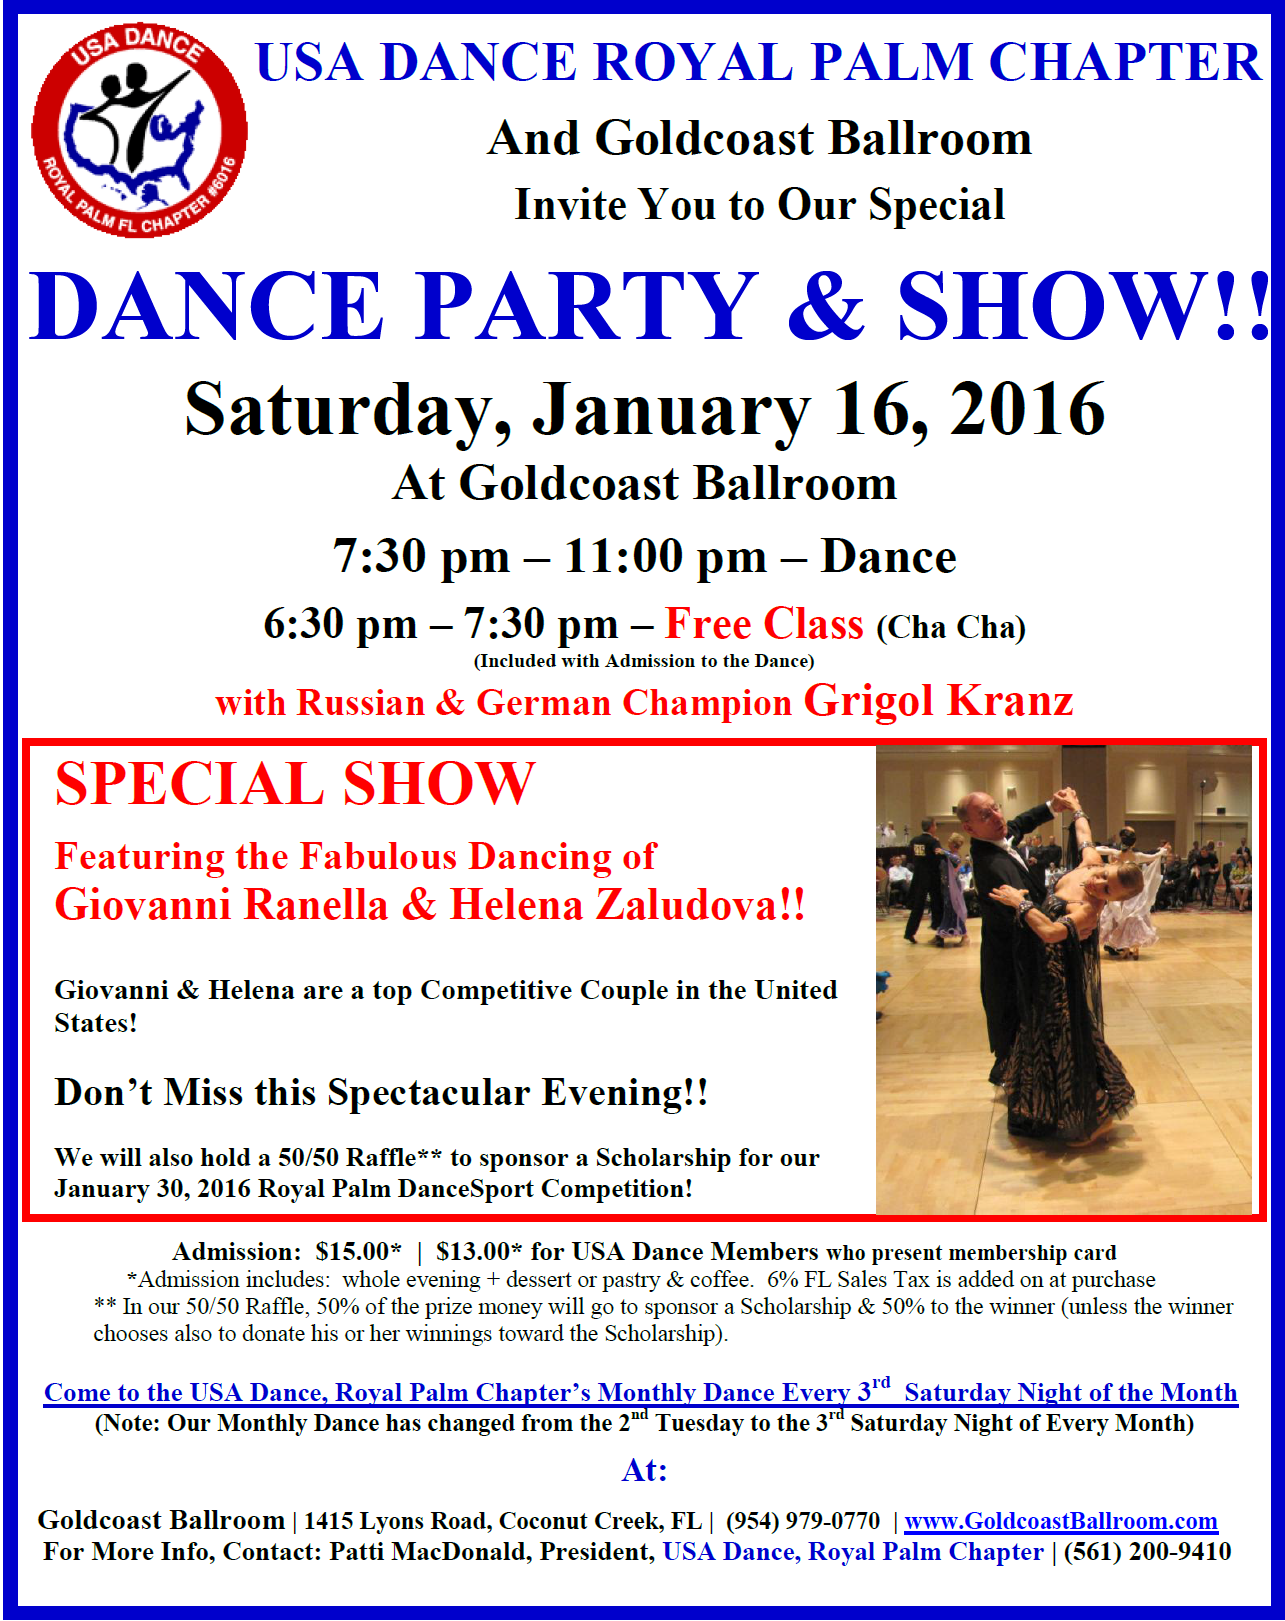 January 16 USA Dance Night - Dance Party & Show - Featuring Giovanni Rannella & Helena Zaludova!!